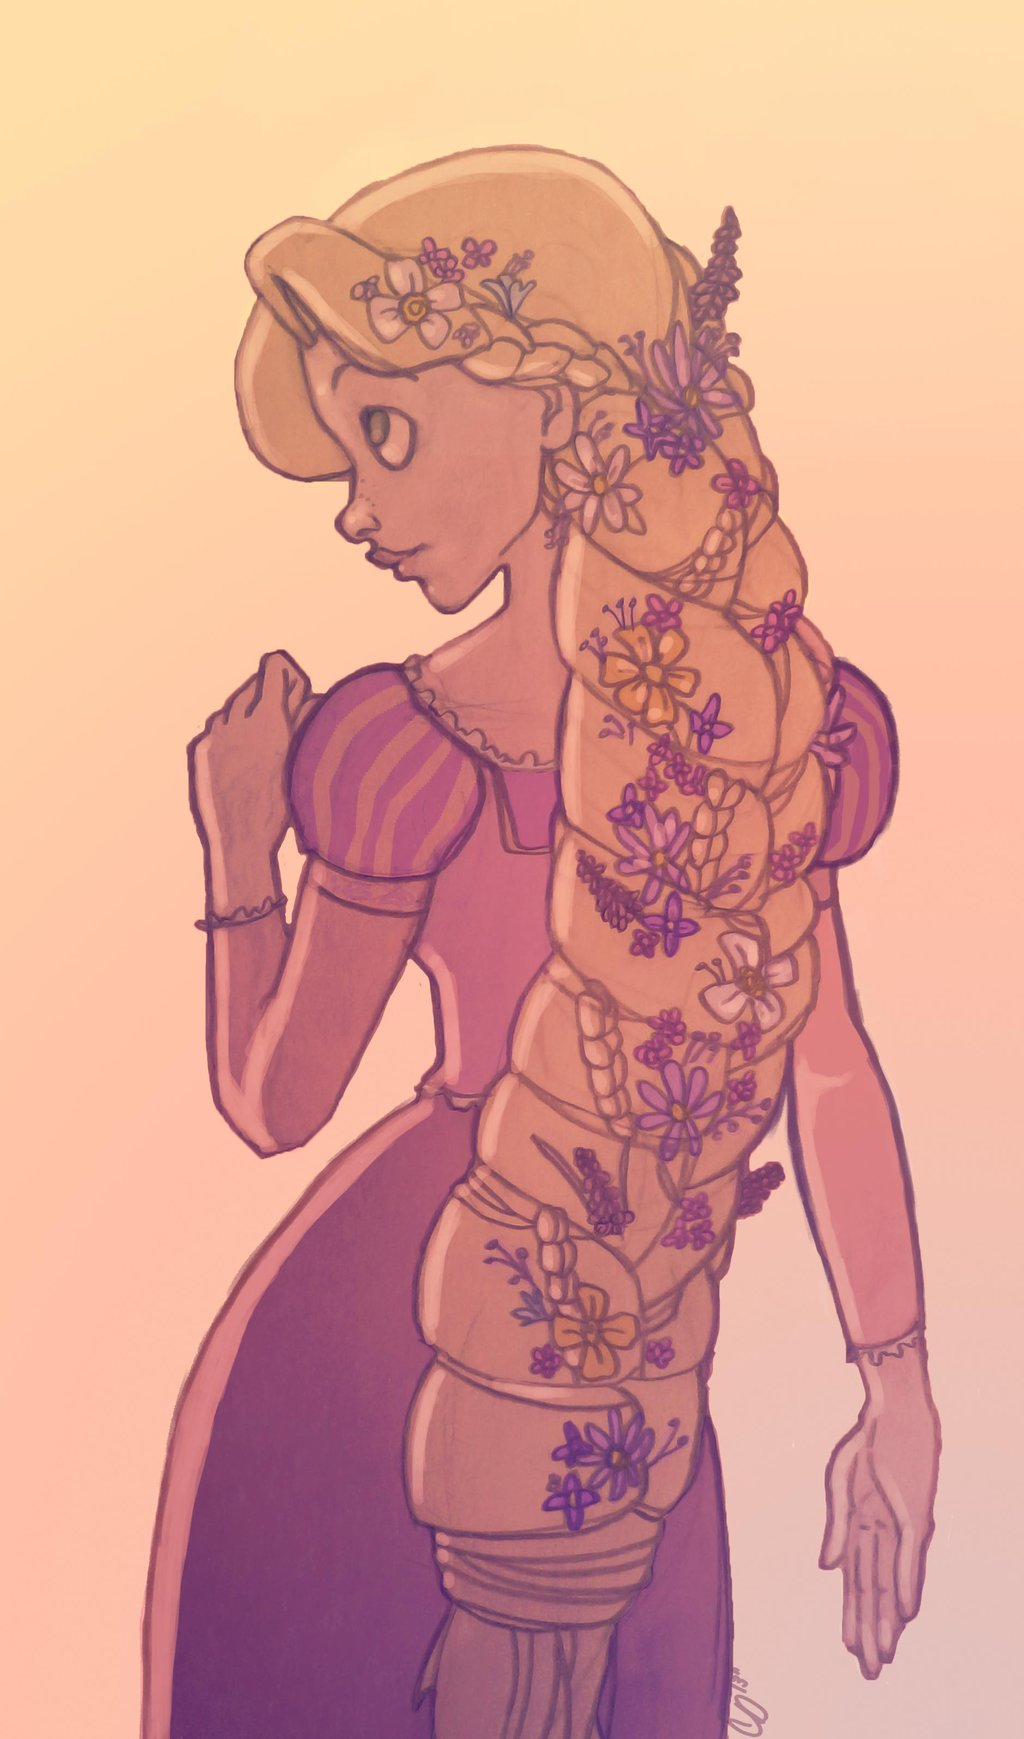 Drawn braid rapunzel Information And Quasimodo Rapunzel Rapunzel